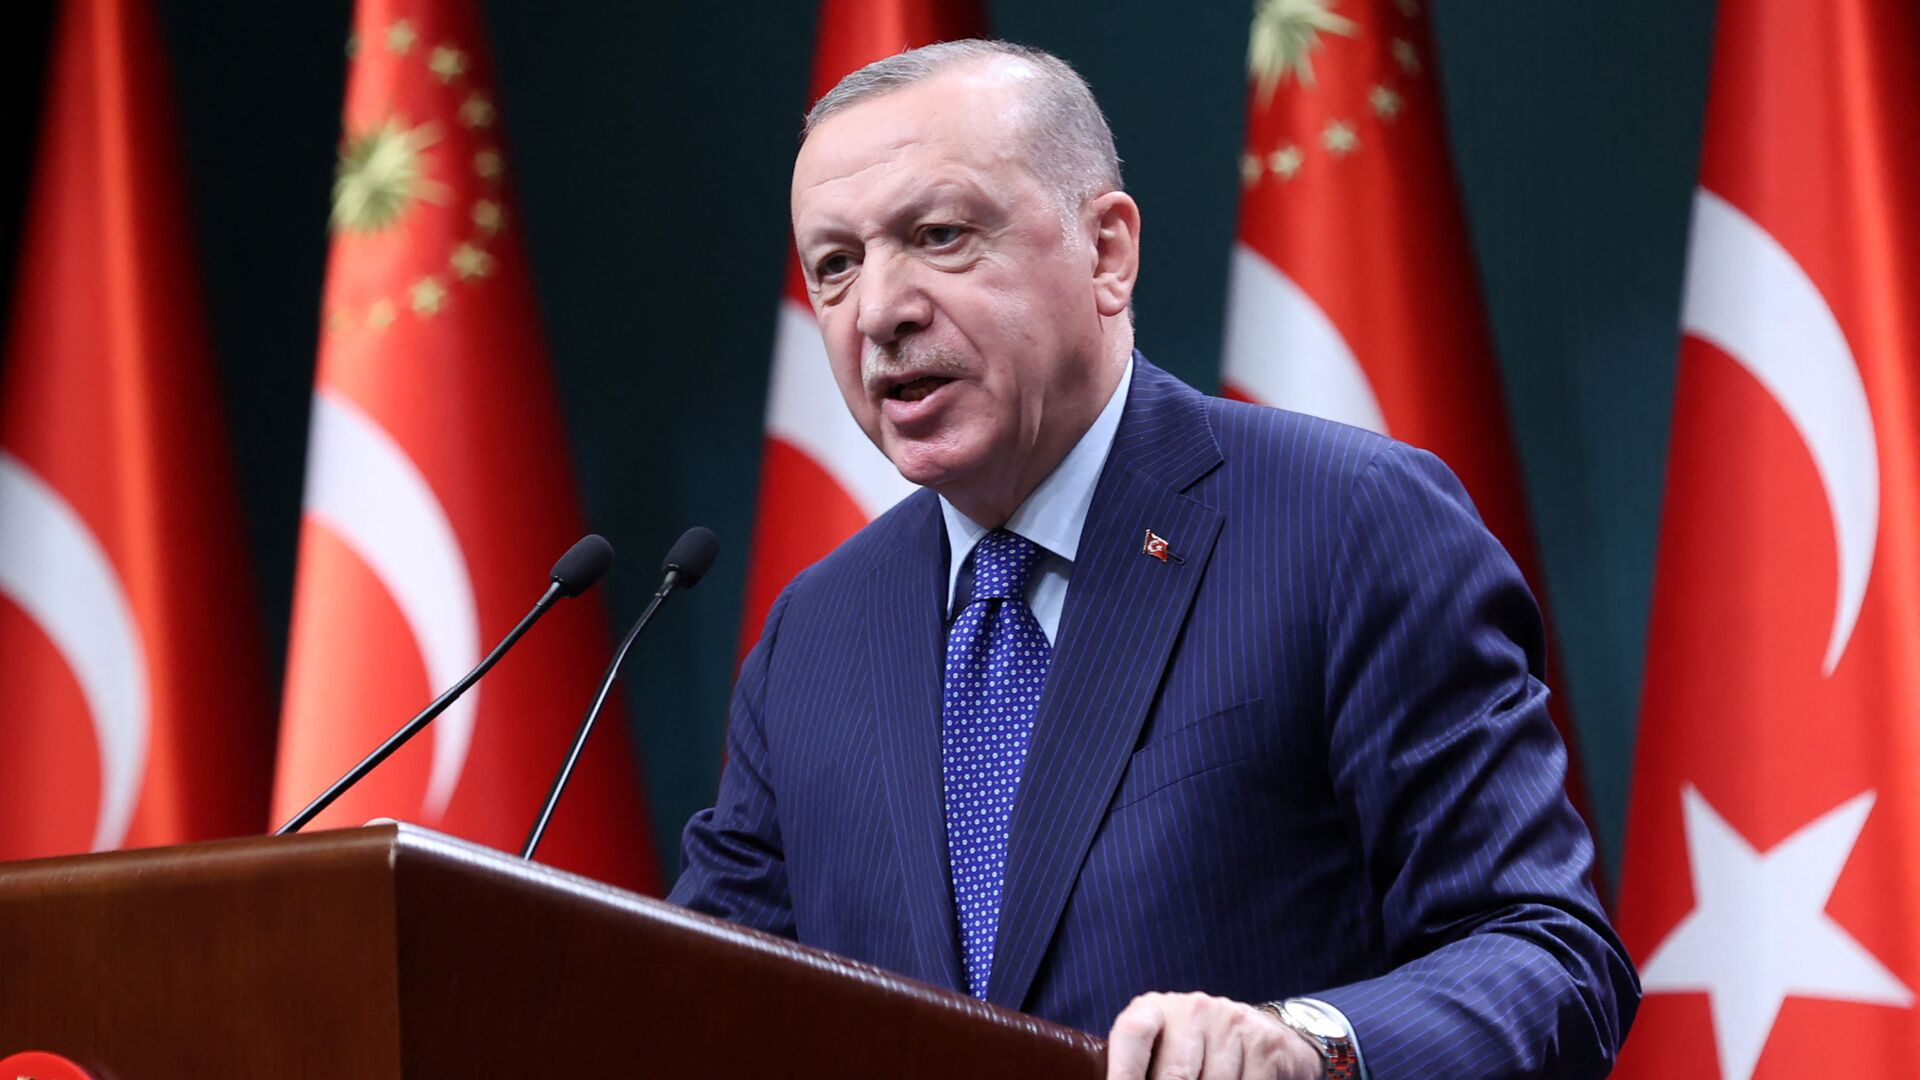 Turkish President Recep Tayyip Erdogan delivers a speech following an evaluation meeting at the Presidential Complex in Ankara on April 5, 2021. - Erdogan on April 5, 2021, accused dozens of retired admirals of eyeing a political coup by attacking his plans for a canal linking the Black Sea to the Mediterranean. Erdogan's fury was directed at a letter published by 104 former admirals over the weekend urging him to abide by the terms of the 1936 Montreux Convention. - Sputnik International, 1920, 29.08.2021